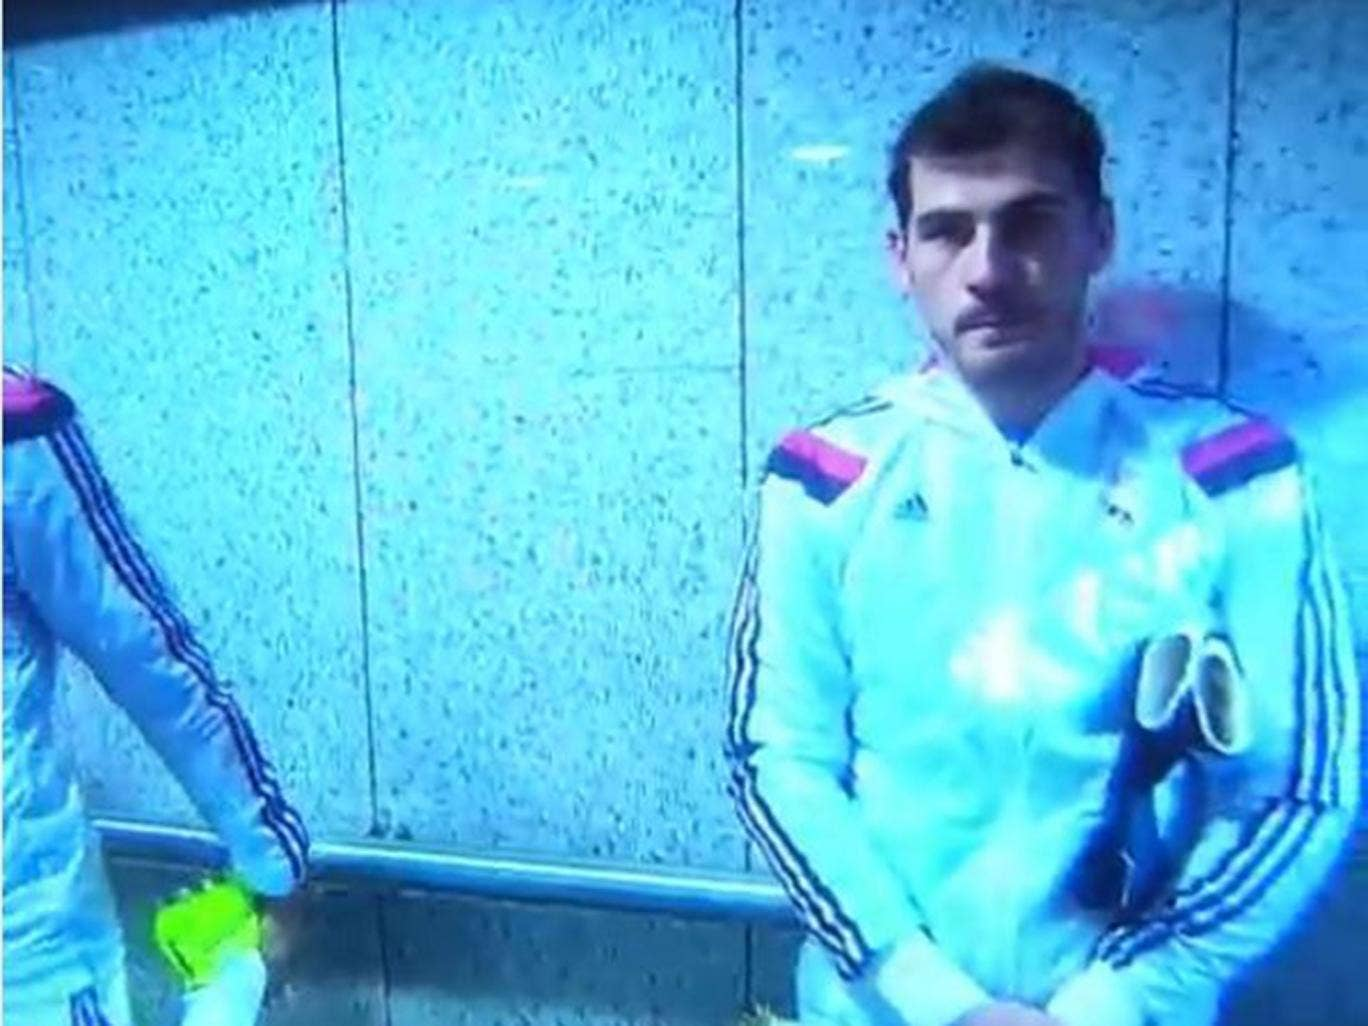 Iker Casillas hilariously snubbed by Real Madrid team-mate Alvaro Arbeloa